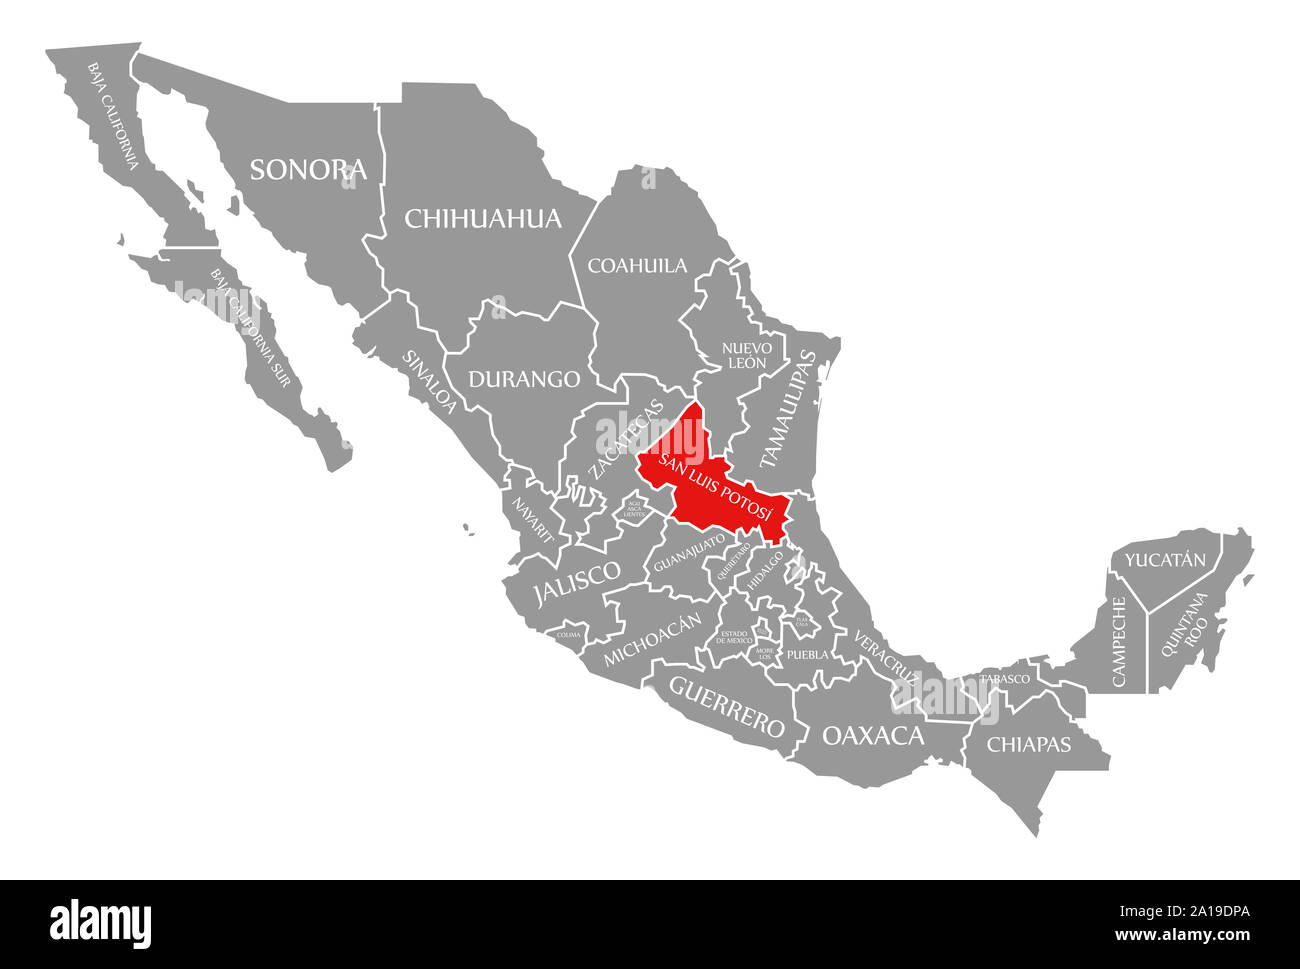 san-luis-potosi-red-highlighted-in-map-of-mexico-2A19DPA.jpg